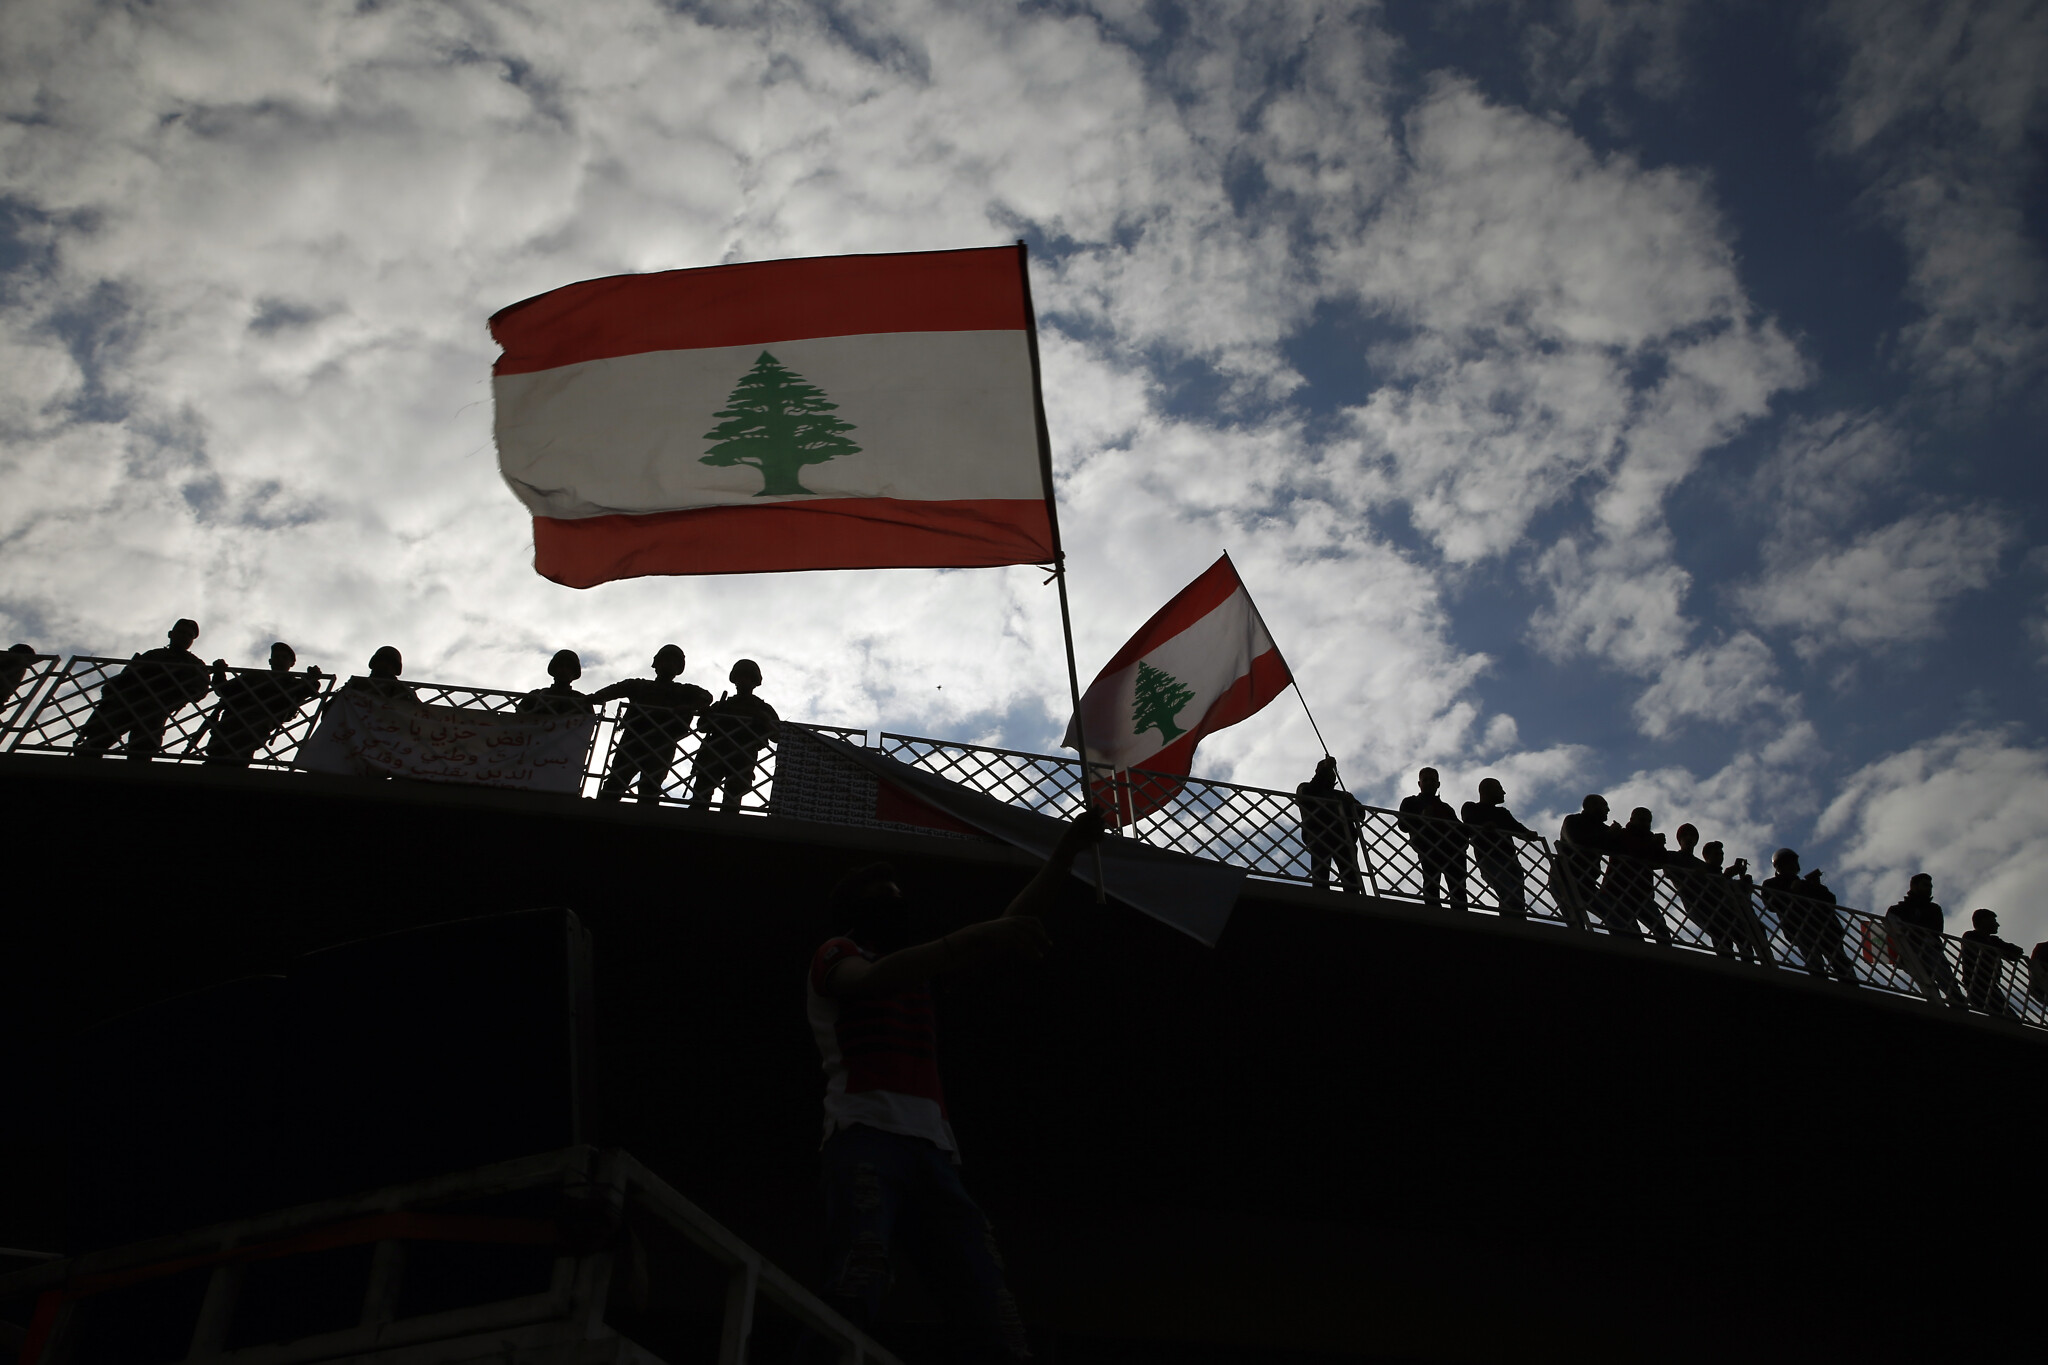 Arrests in Lebanon as Anti-Government Protests Turn Violent